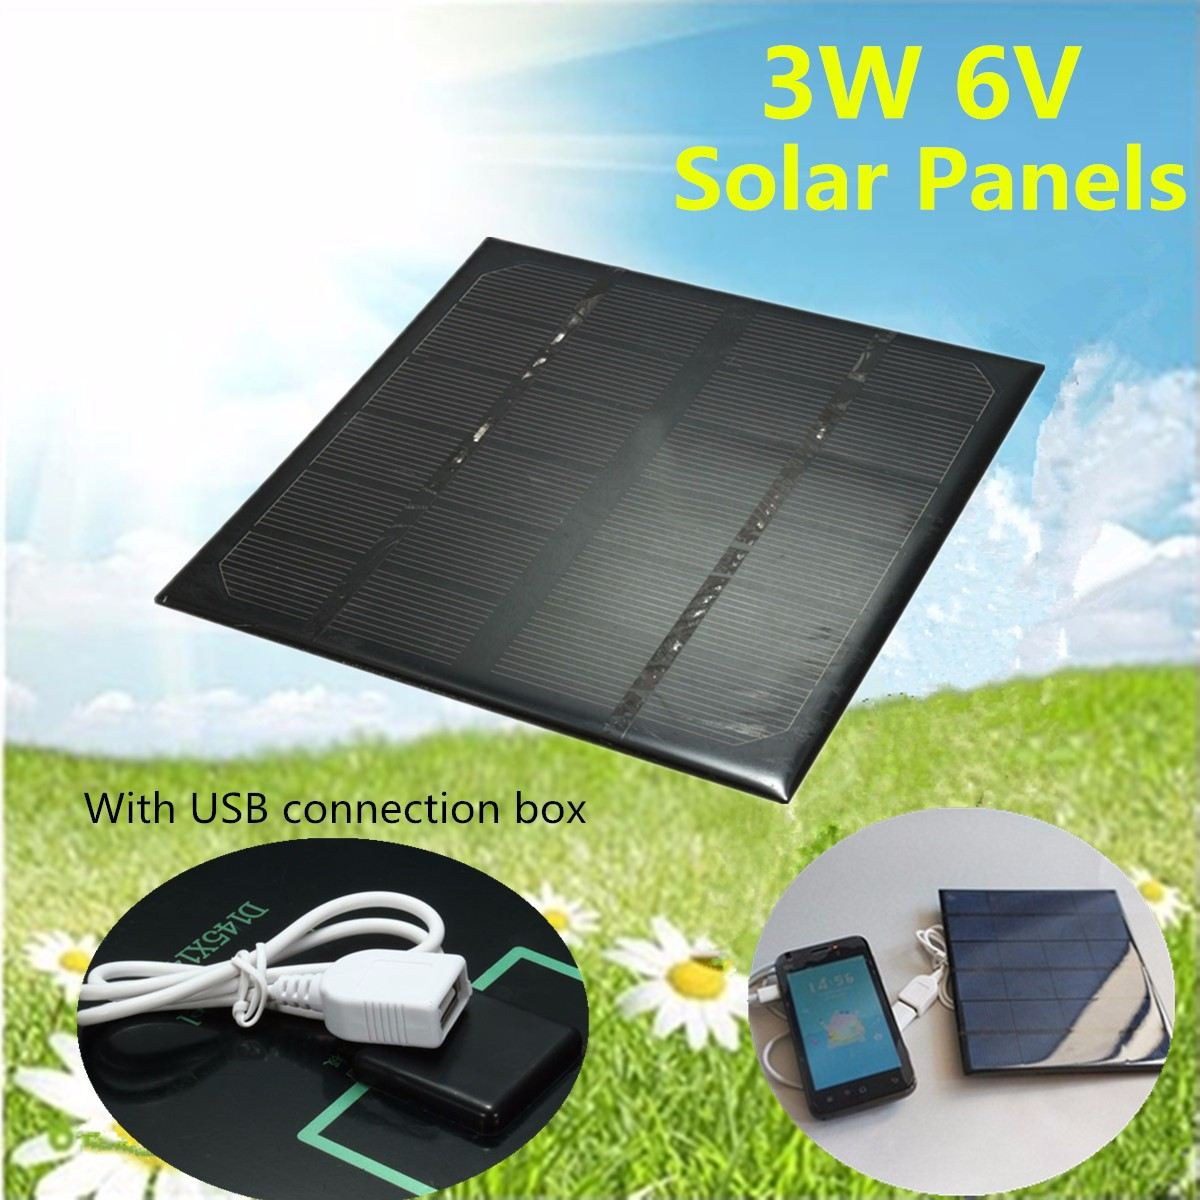 KINCO 3W 6V Solar Panel With USB Connection DIY Battery Charger Monocrystalline Silicon Solar System Supply MINI Solar Cell